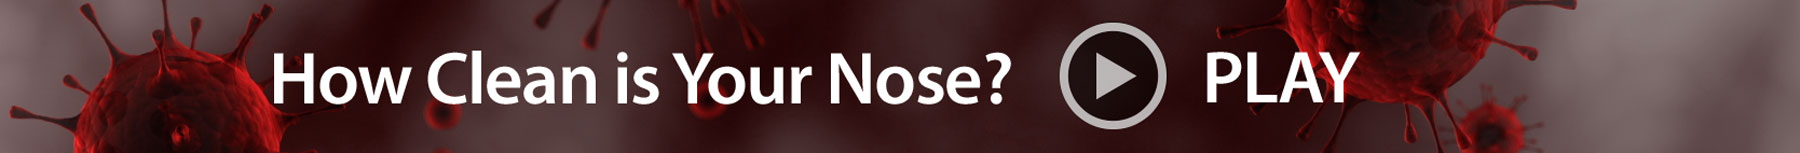 How Clean is Your Nose?